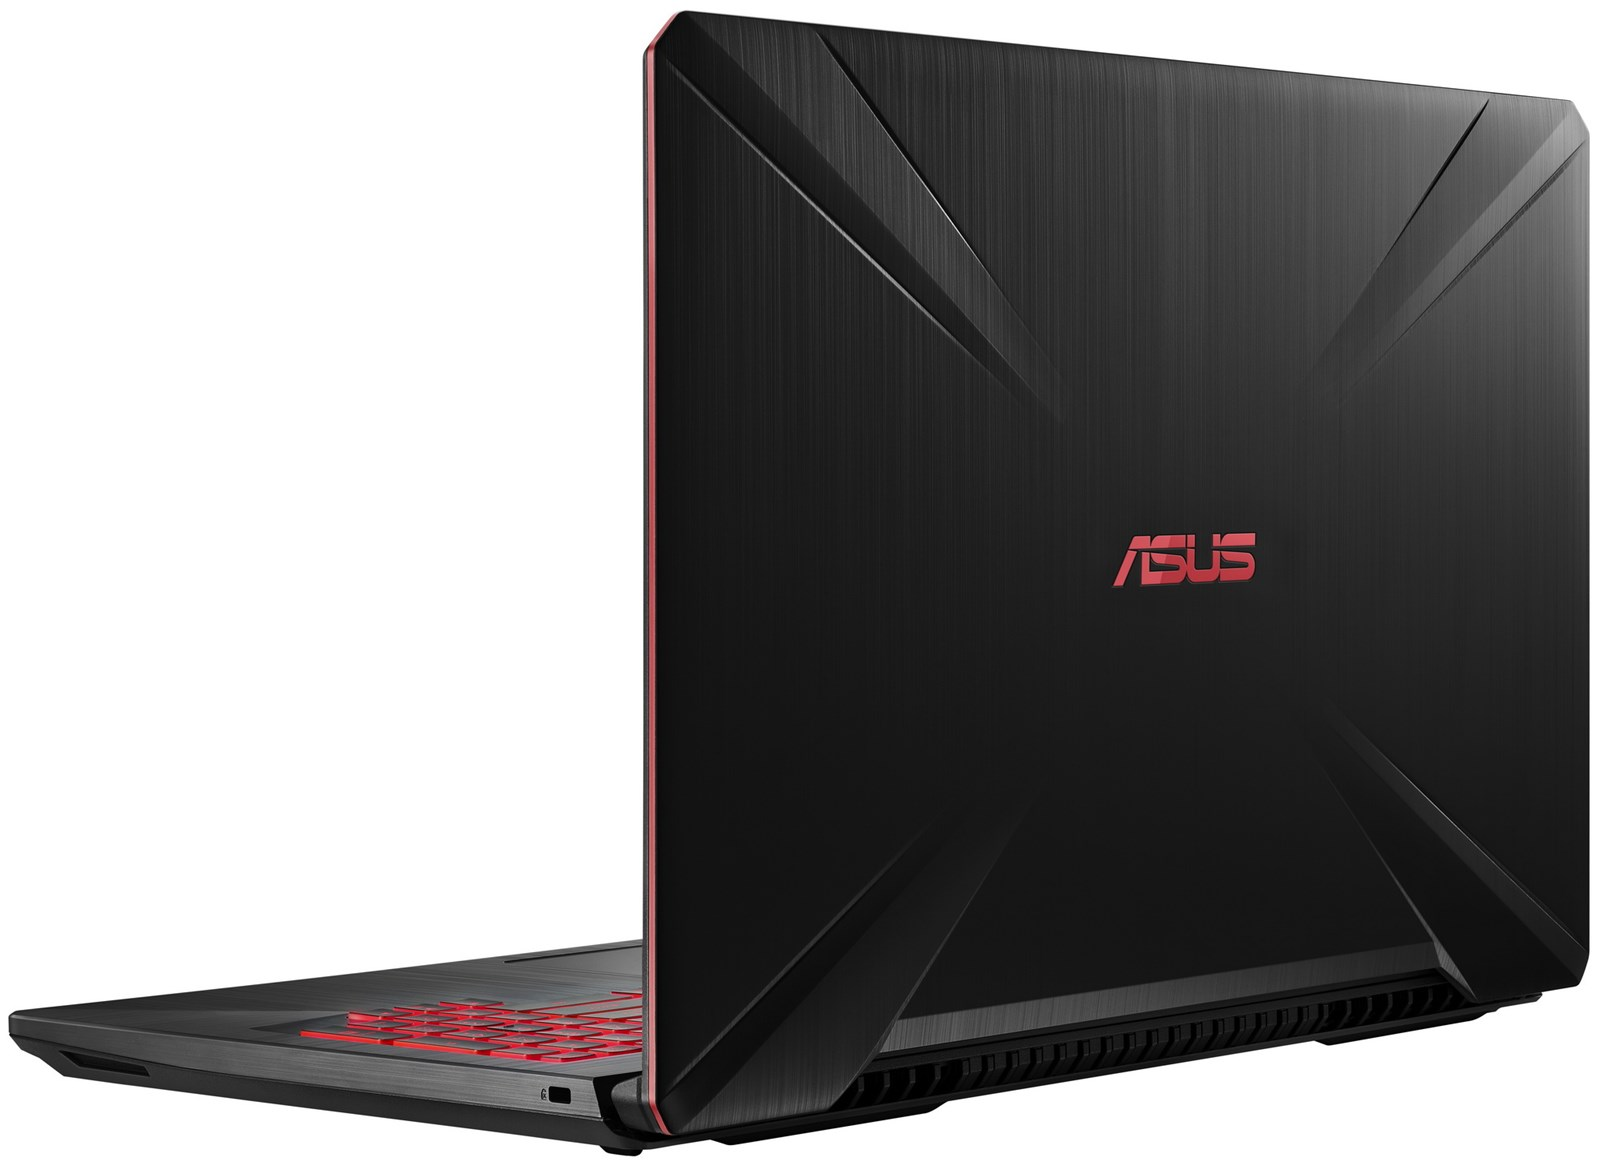 Asus Tuf Fx504gd Rs51 156 Full Hd Ips Level Gaming Laptop W Gtx E4310t 1050 2gb Gddr5 Coffee Lake Core I5 8300h